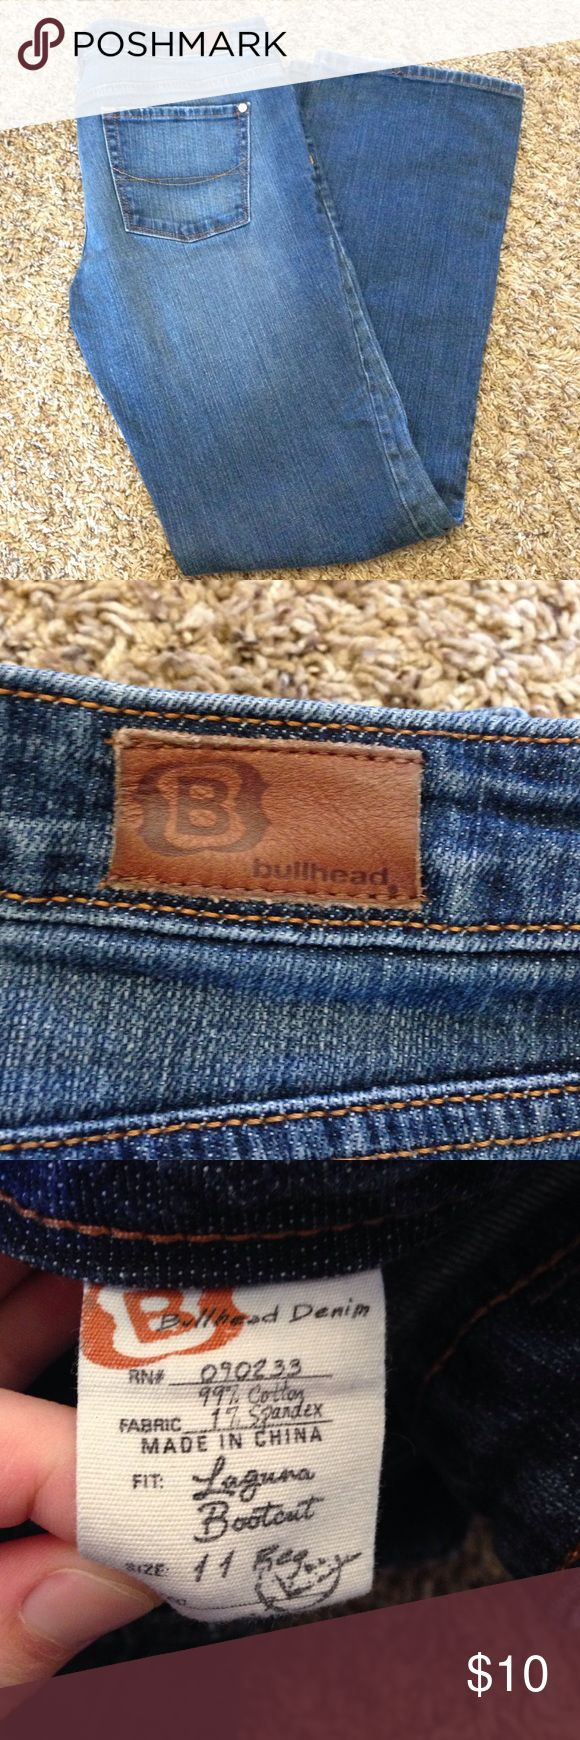 Women's Bootcut jeans Women's Bullhead jeans. Have been worn. Good condition, no rips or tears. Size 11, bootcut. Bullhead Jeans Boot Cut